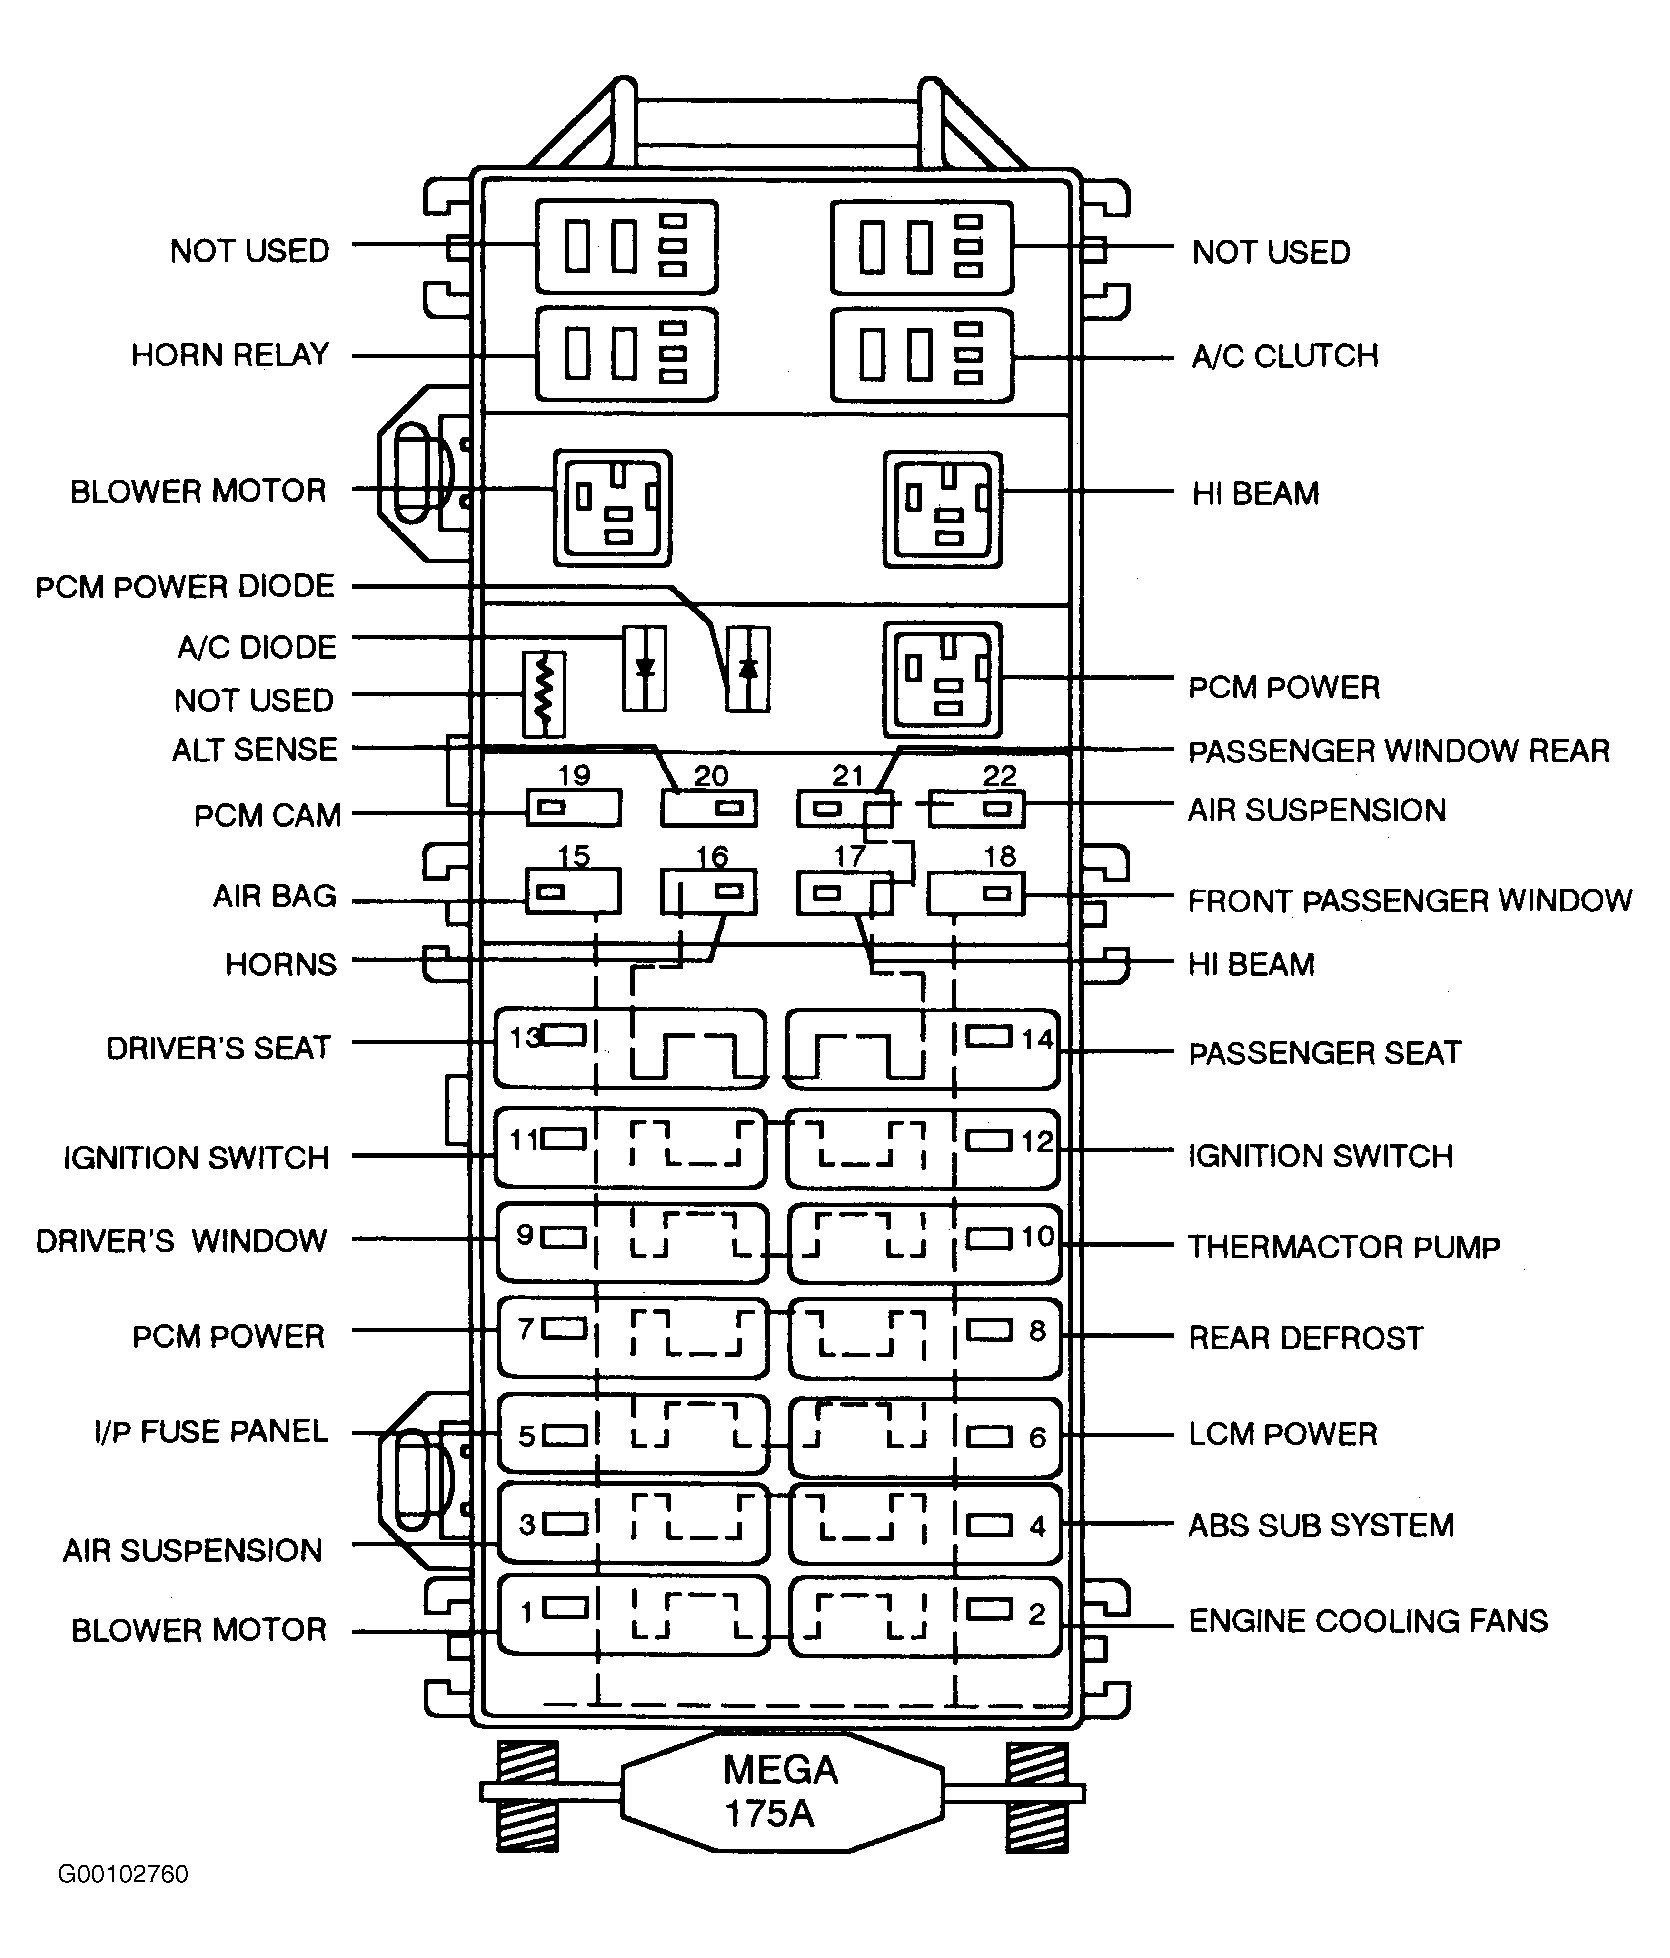 hight resolution of 2006 lincoln zephyr fuse box diagram wiring library2006 lincoln zephyr fuse box diagram